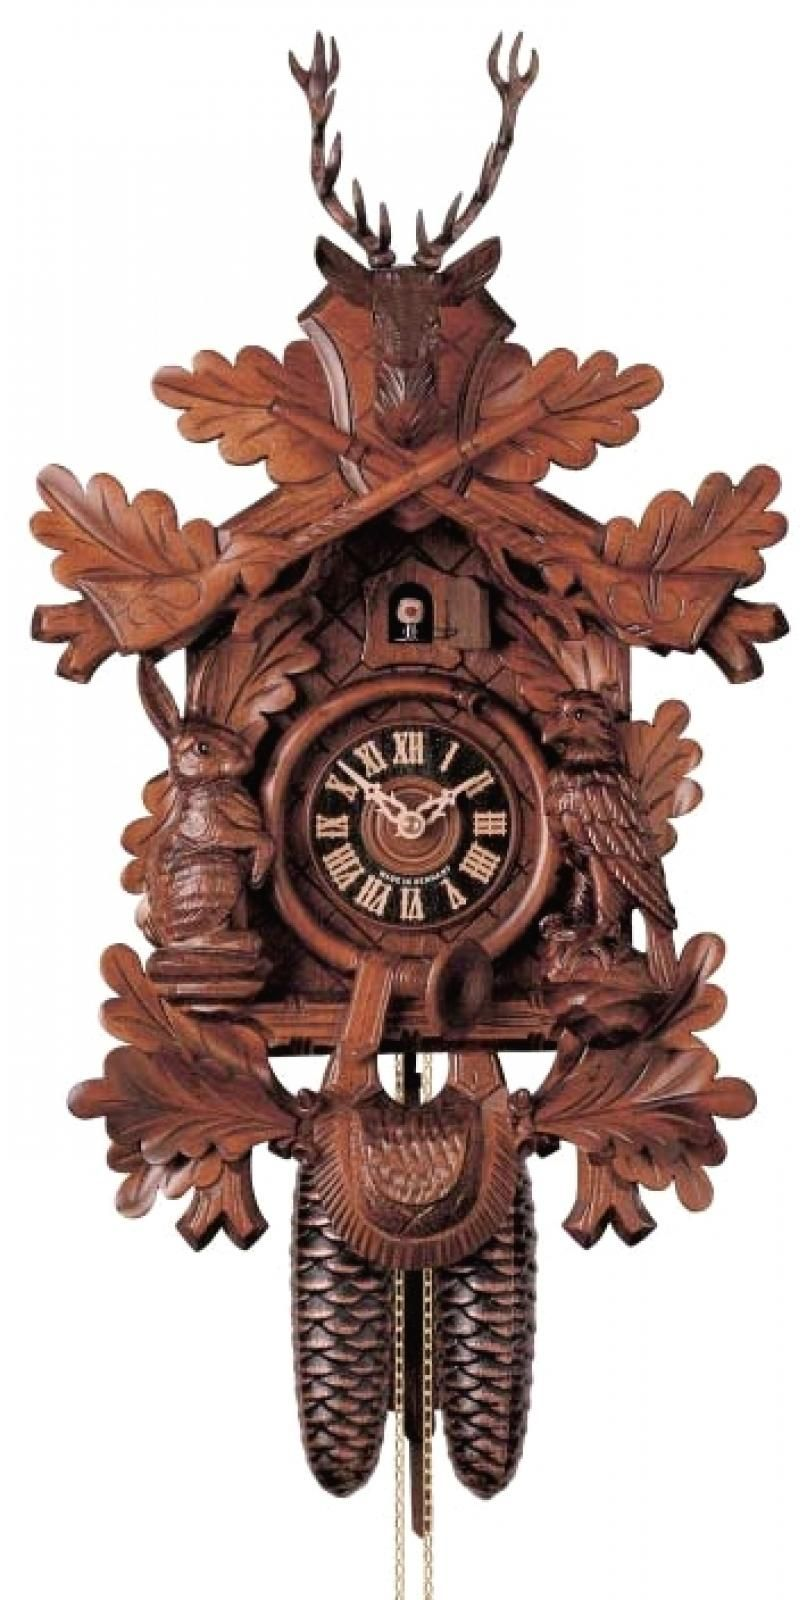 22in Hunting Style Riffles Animals German Black Forest Cuckoo Clock 8 Day Traditional